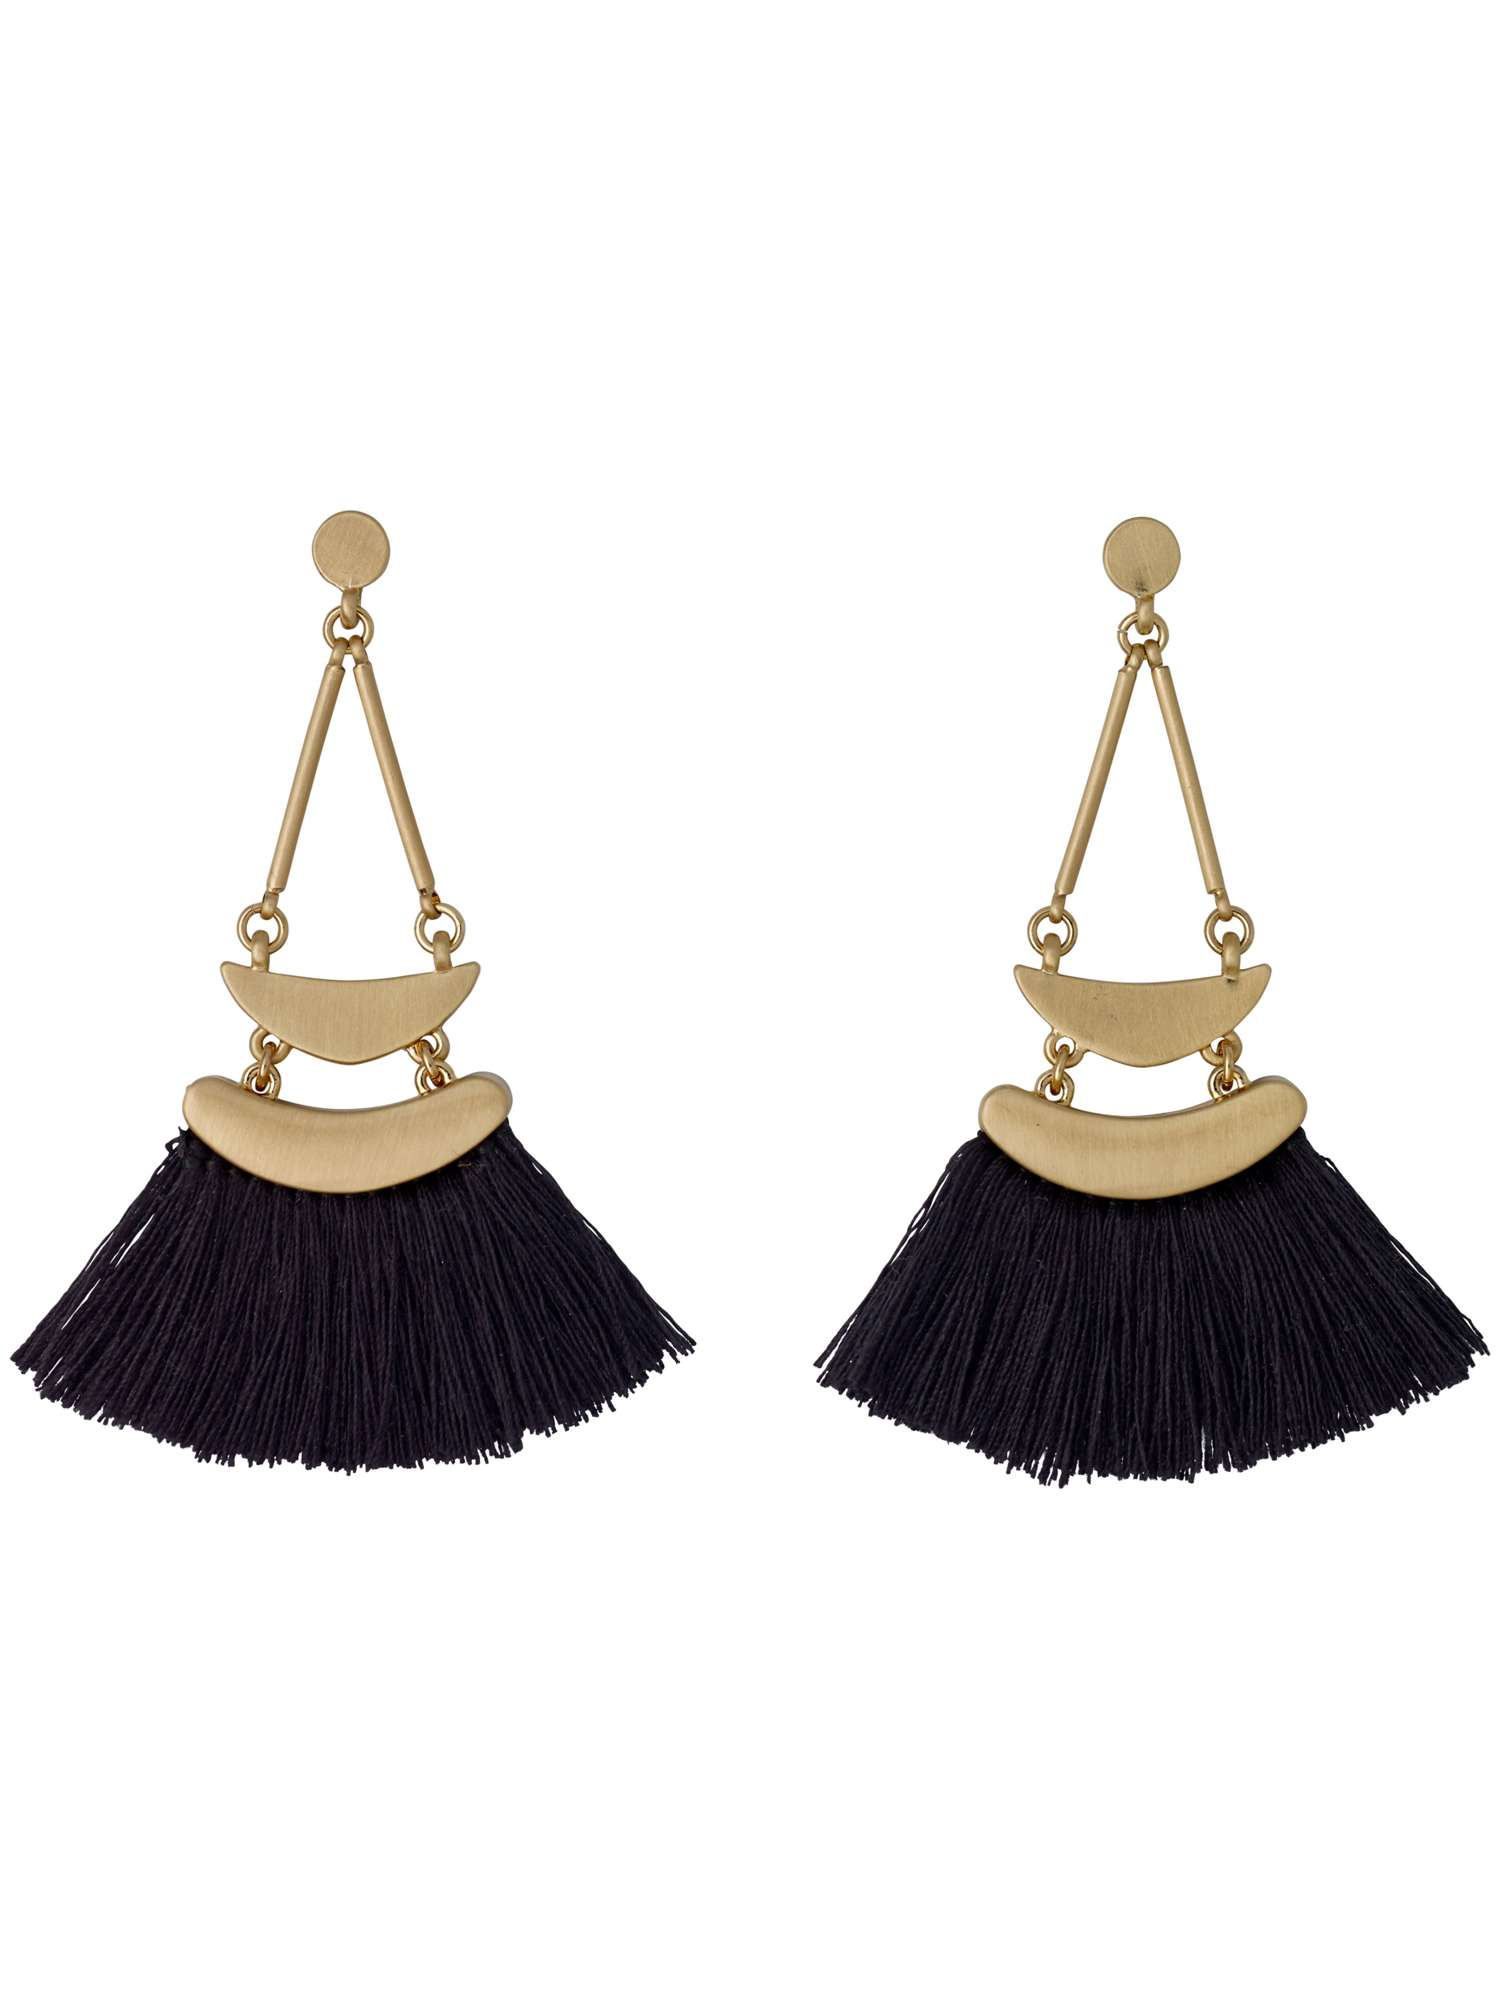 Pilgrim Beautiful Statement Dangle Earrings £31.99